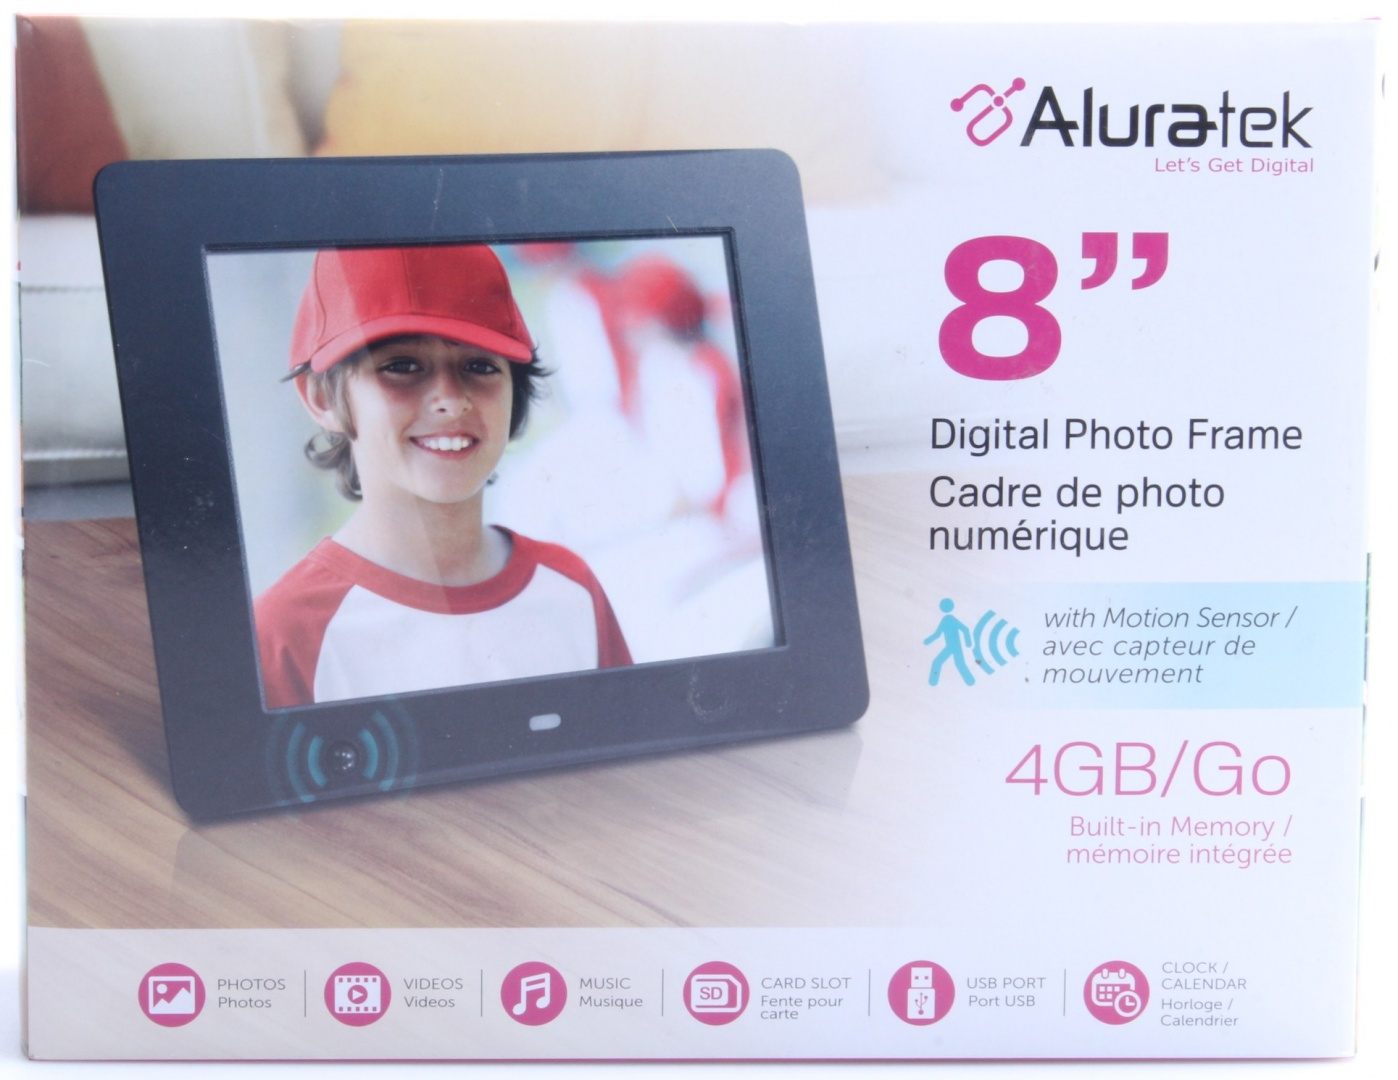 Aluratek Admsf108f 8 Inch Digital Photo Frame With Energy Efficient